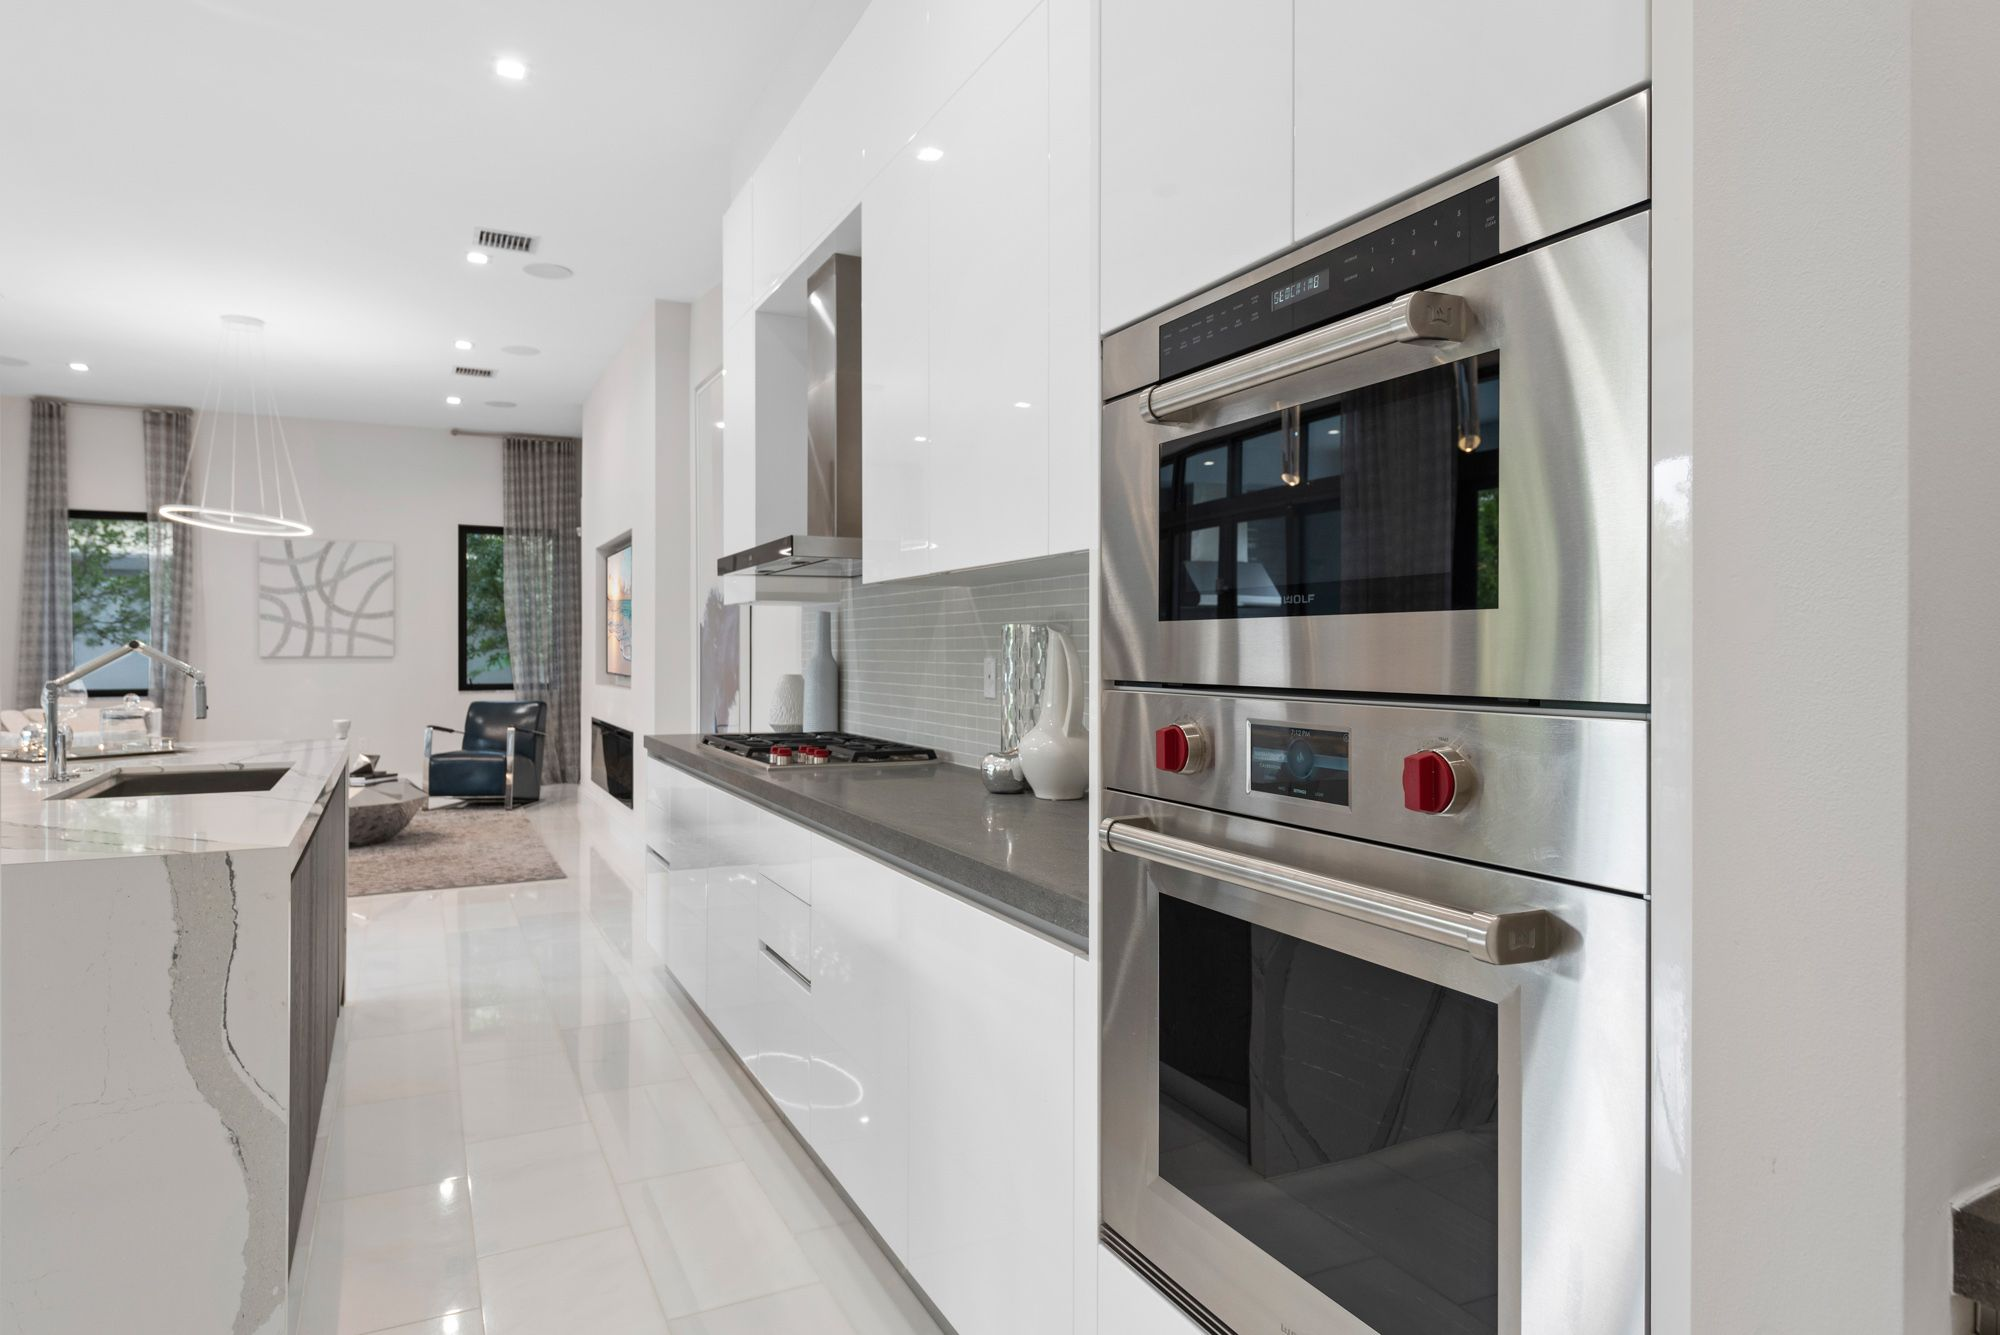 Kitchen featured in the Capri B Three Story By CC Homes in Miami-Dade County, FL